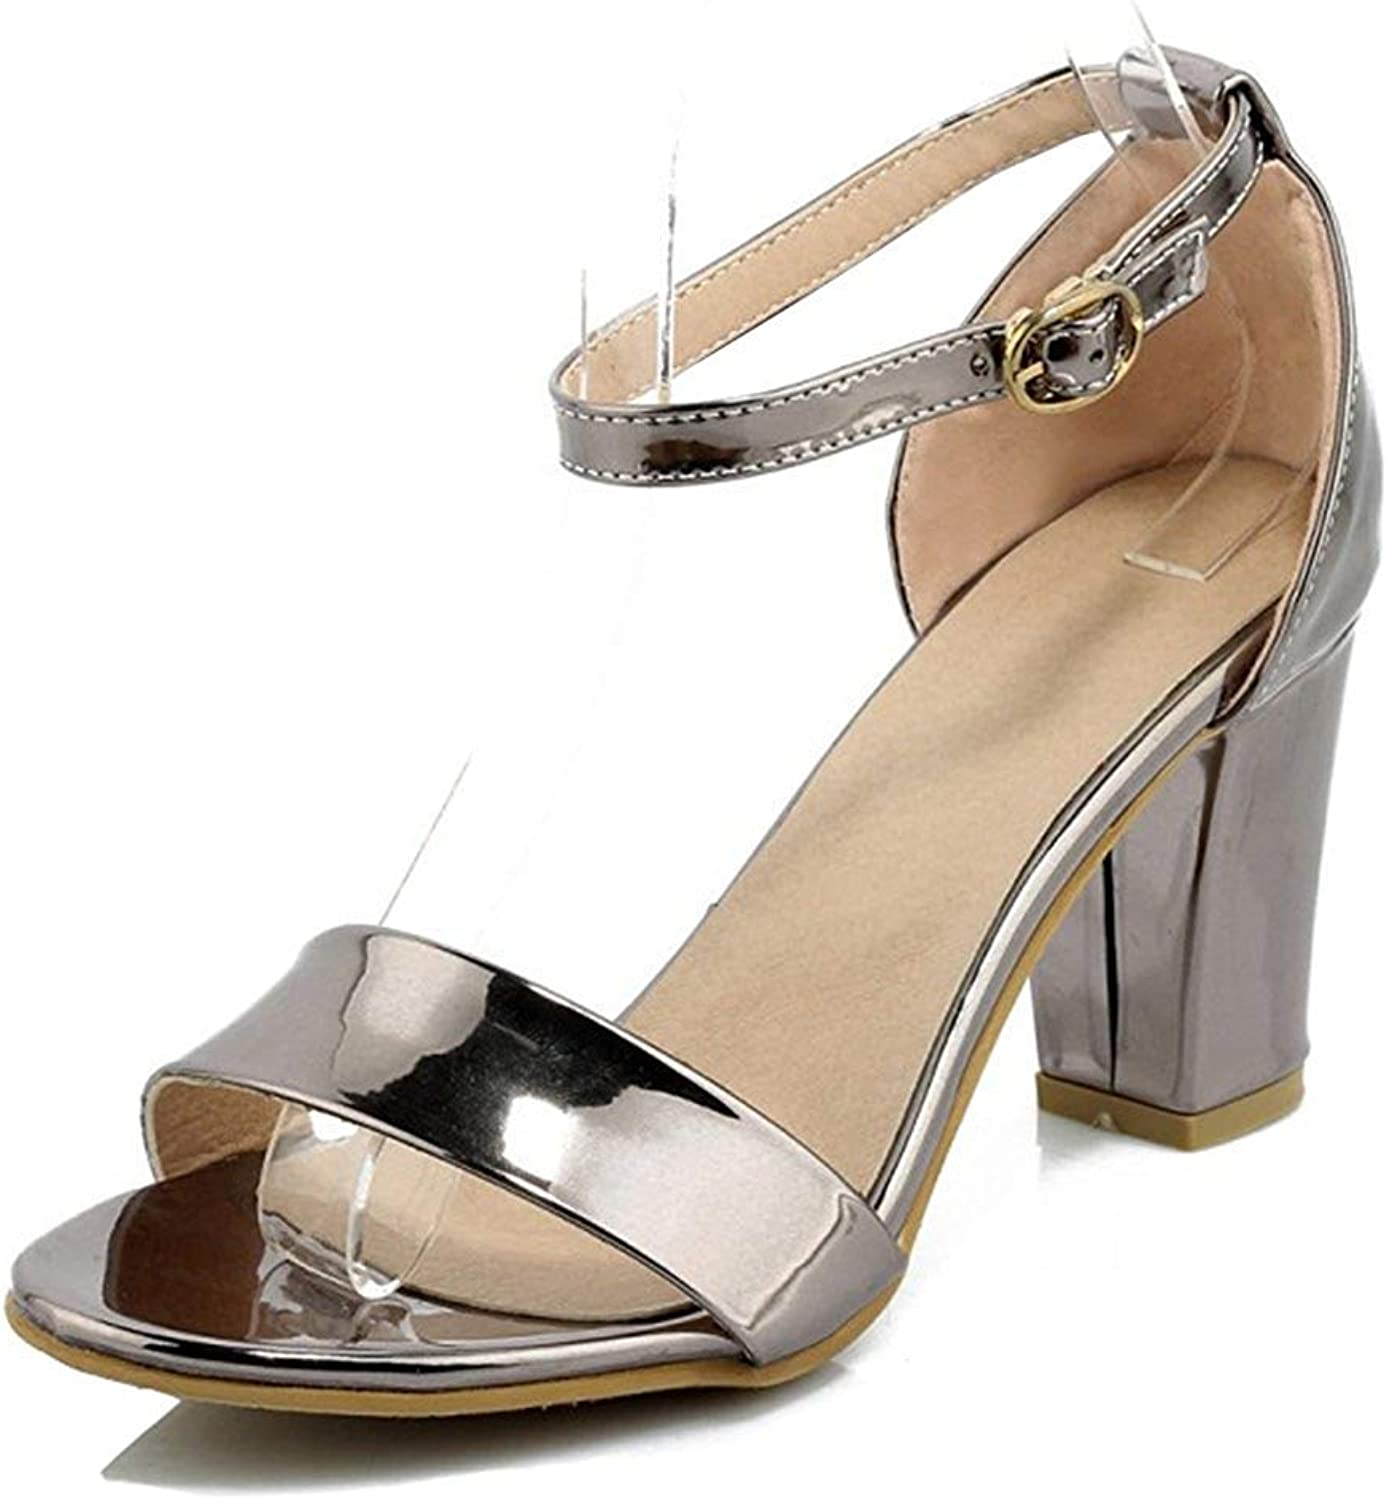 Unm Women's Fashion Open Toe Block High Heel Dressy Buckled Sandals shoes with Ankle Strap